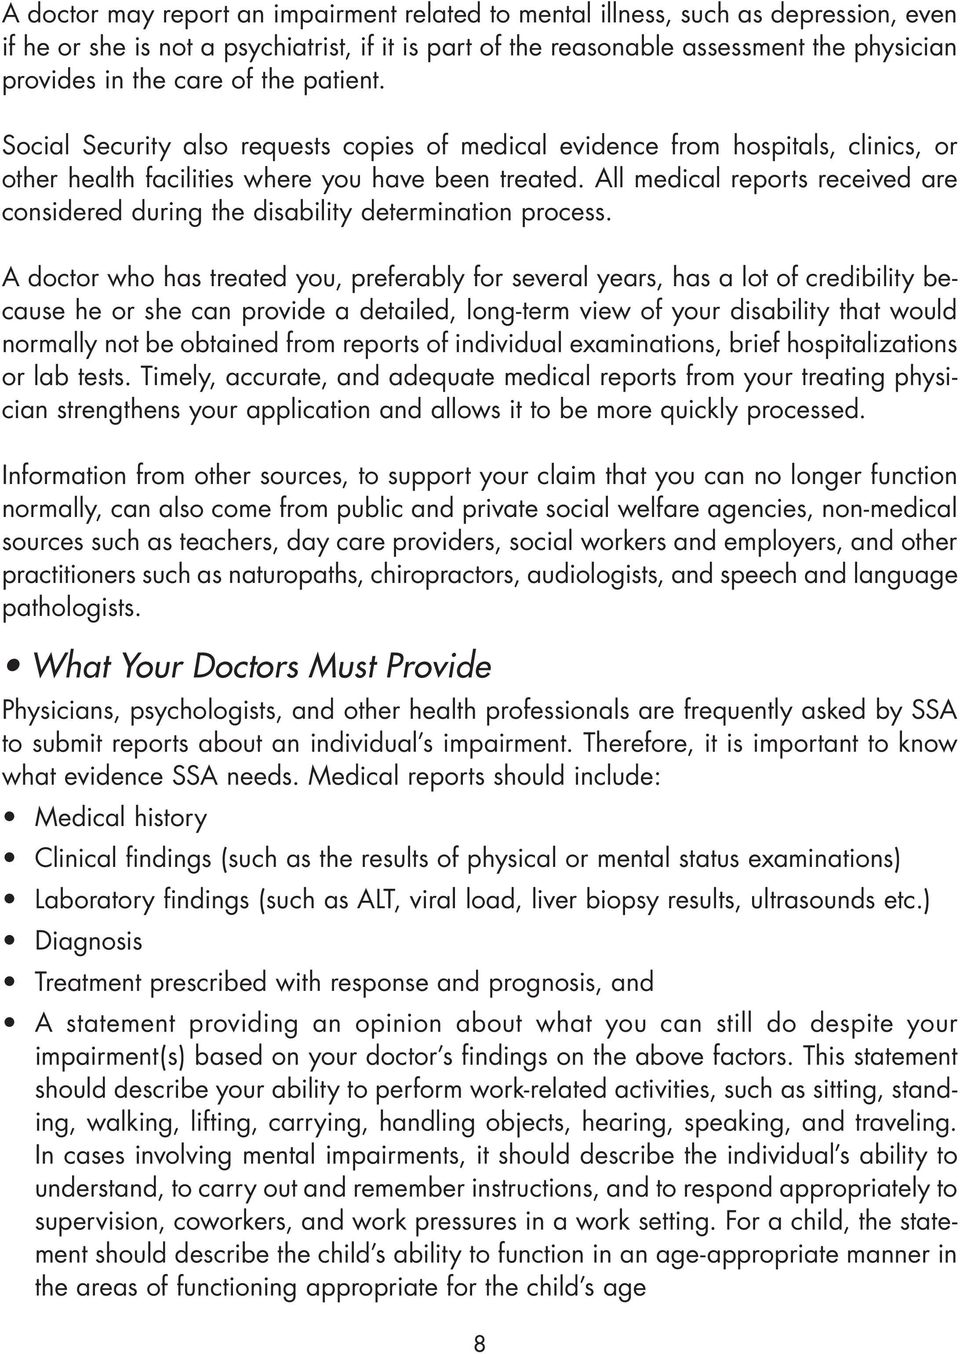 All medical reports received are considered during the disability determination process.